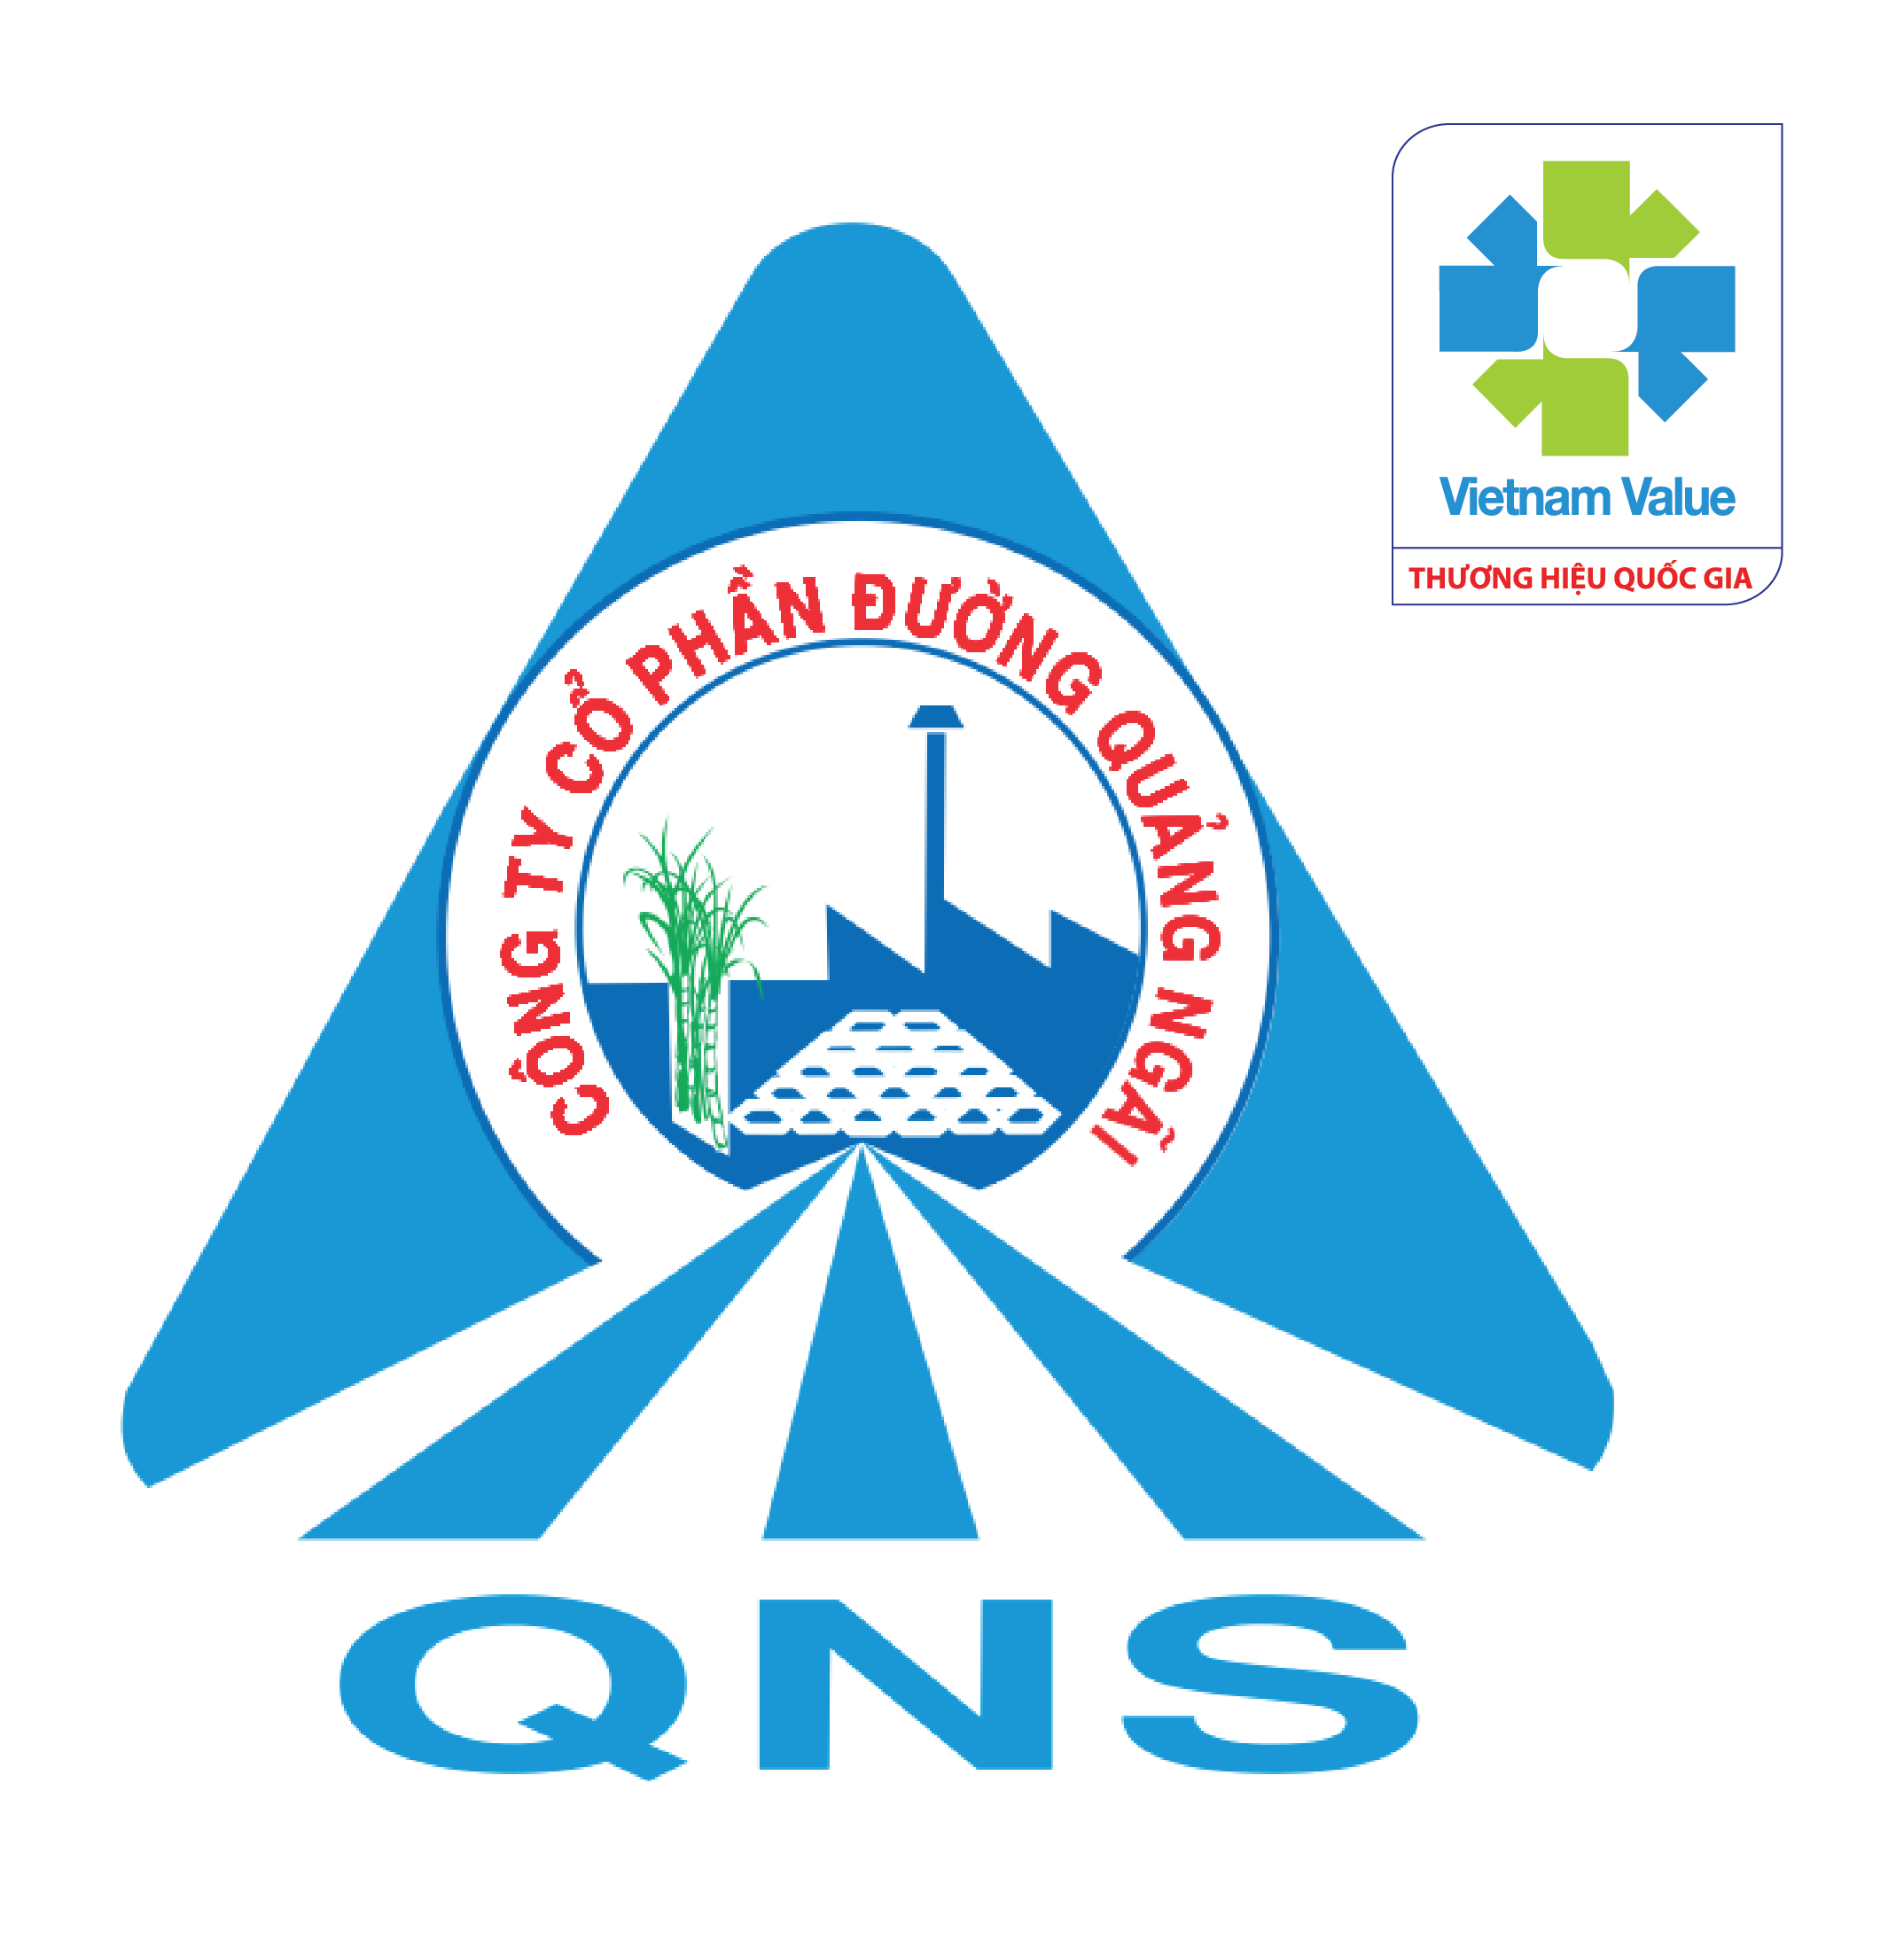 QUANG NGAI SUGAR JOINT STOCK COMPANY